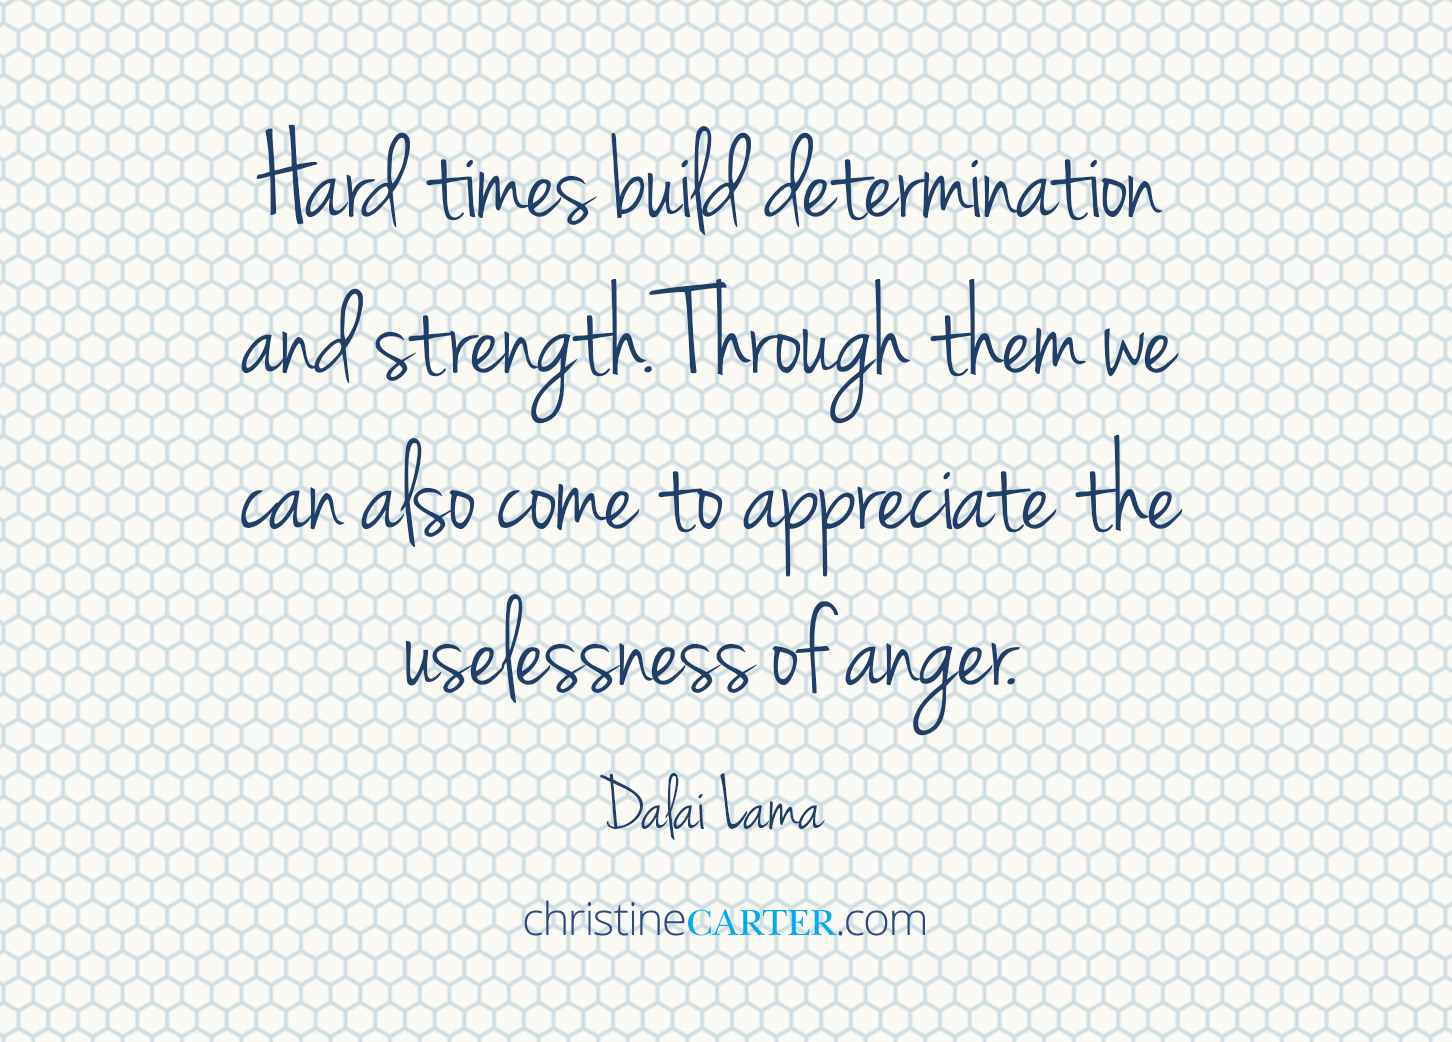 Hard times build determination and strength. Through them we can also come to appreciate the uselessness of anger. — Dalai Lama